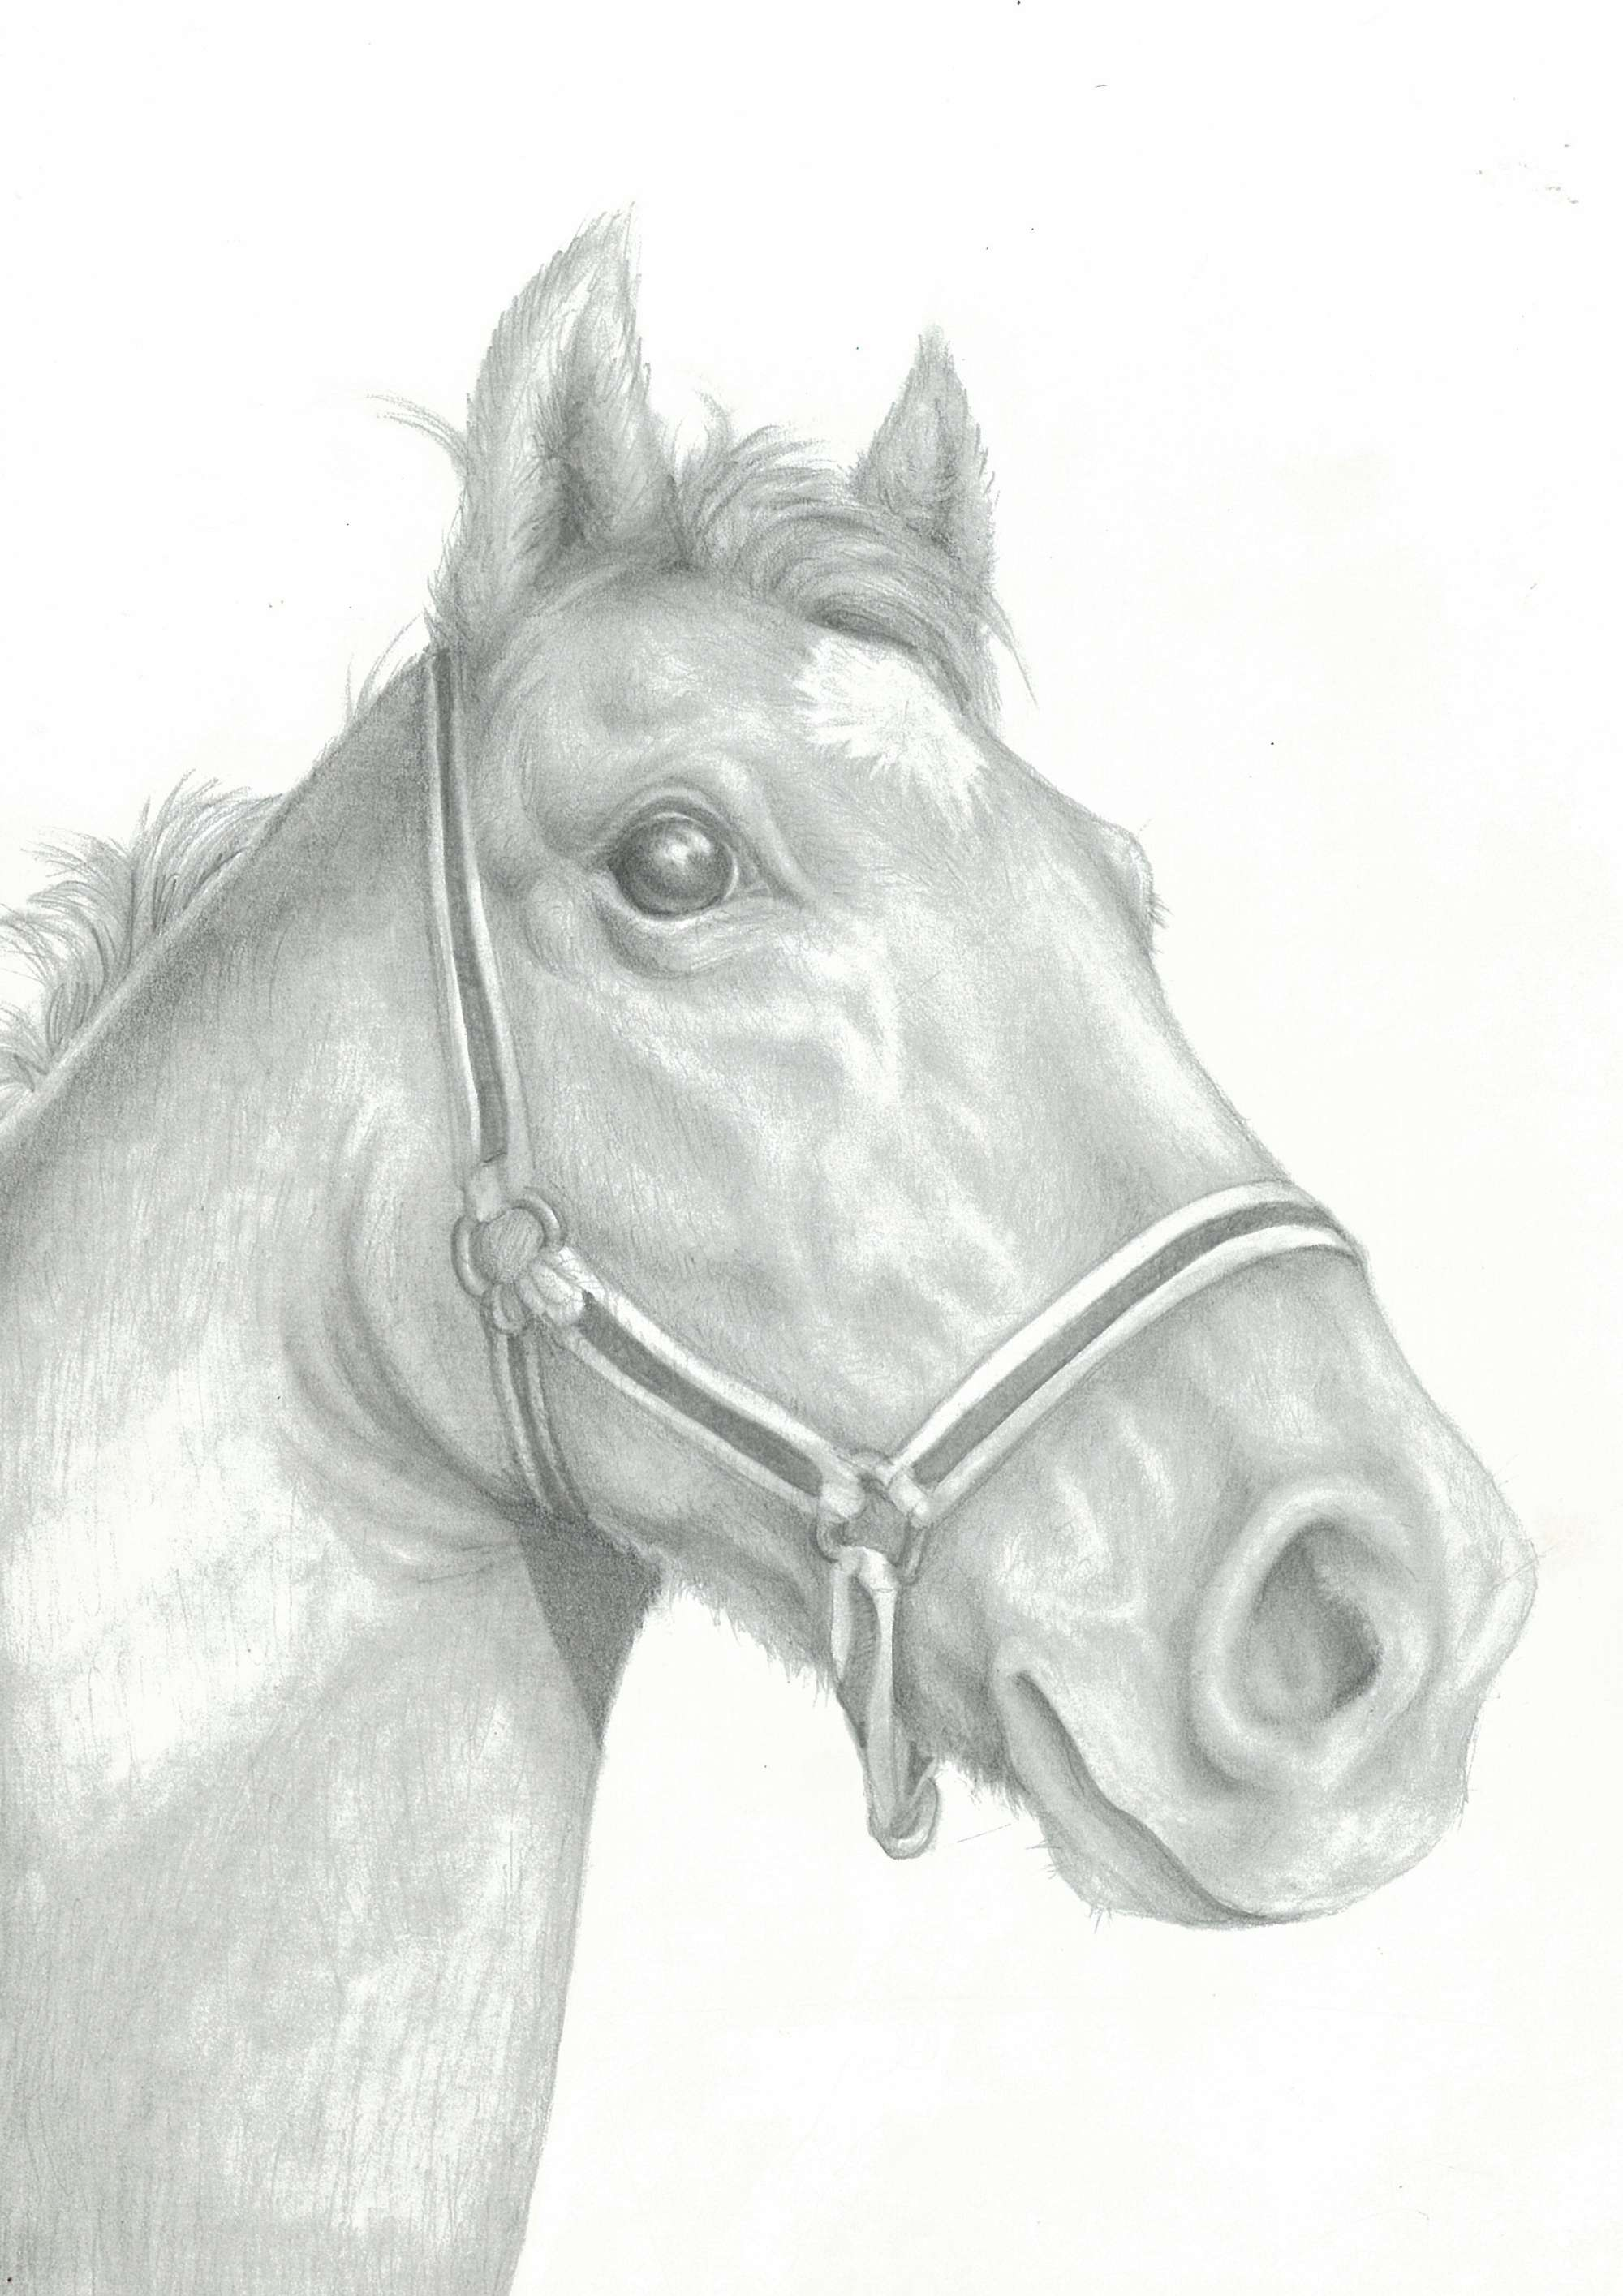 The Rescue Brumby